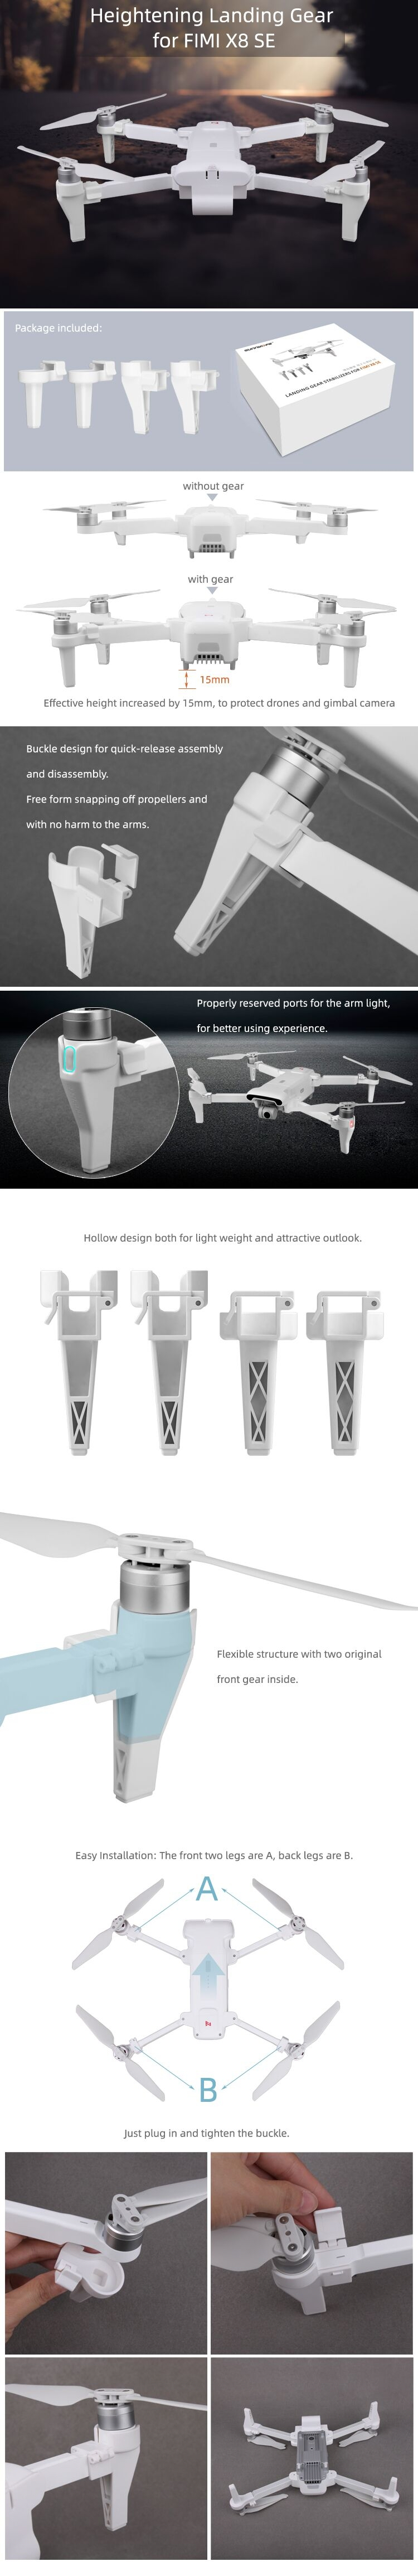 Sunnylife Extended Heighten Landing Gear Gimbal Camera Protector Set for FIMI X8 SE RC Quadcopter